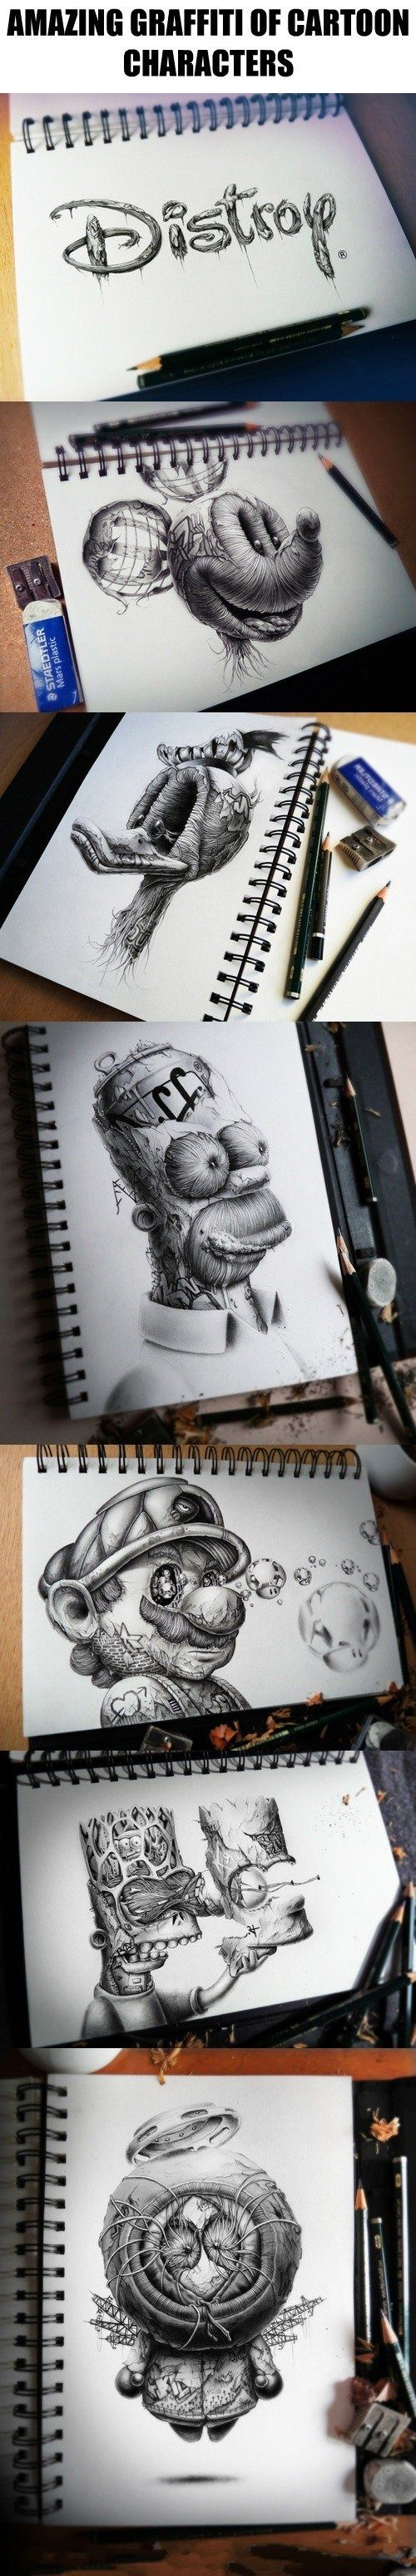 Amazing graffiti of cartoon characters                                                                                                                                                                                 More